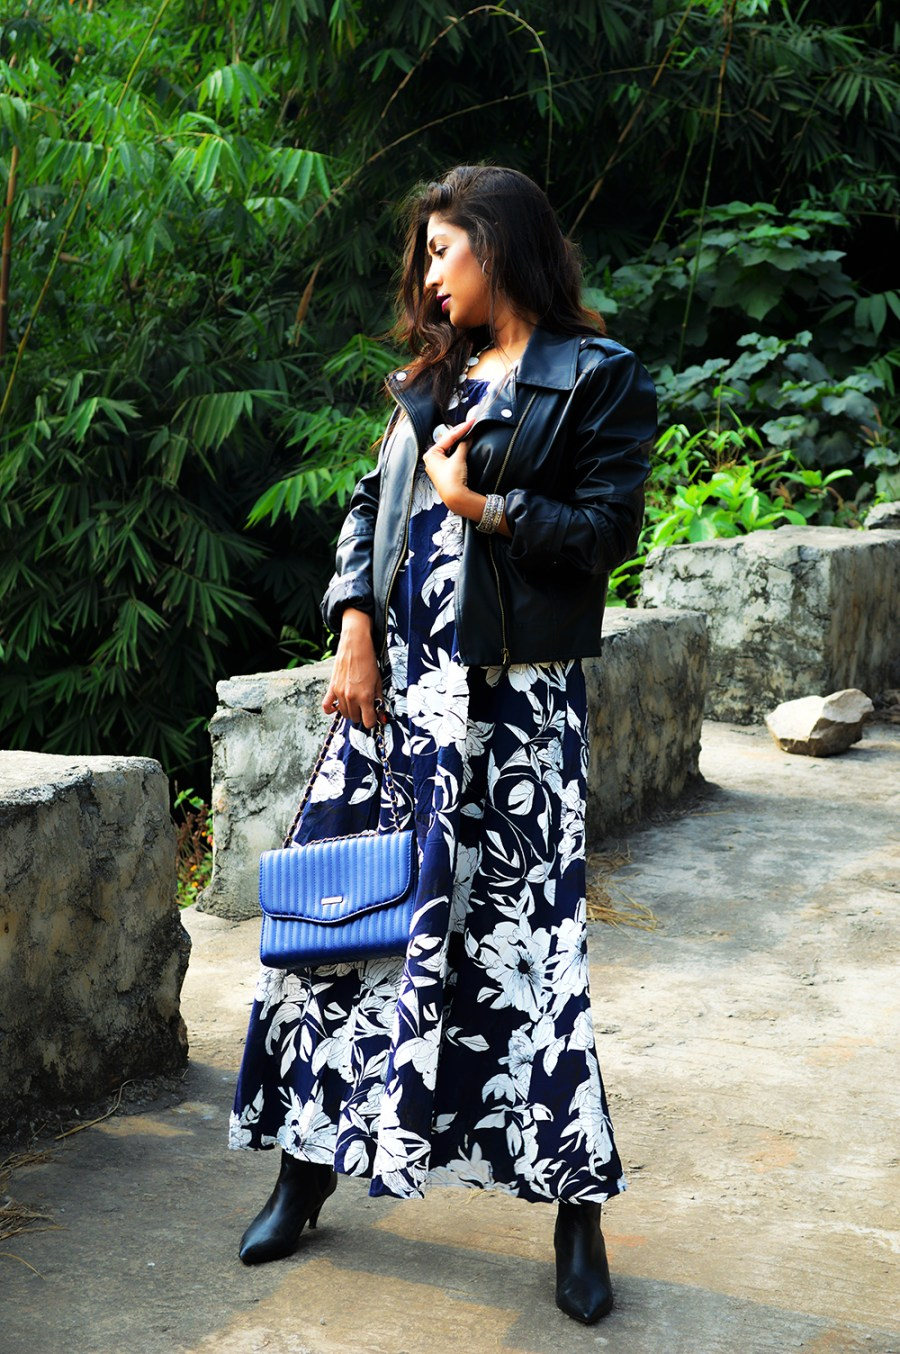 Synthetic leather, Fashion, Style, Printed maxi dress, faux leather, biker jacket, Fashion Blogger, Indian blogger, Photography, OOTD-1